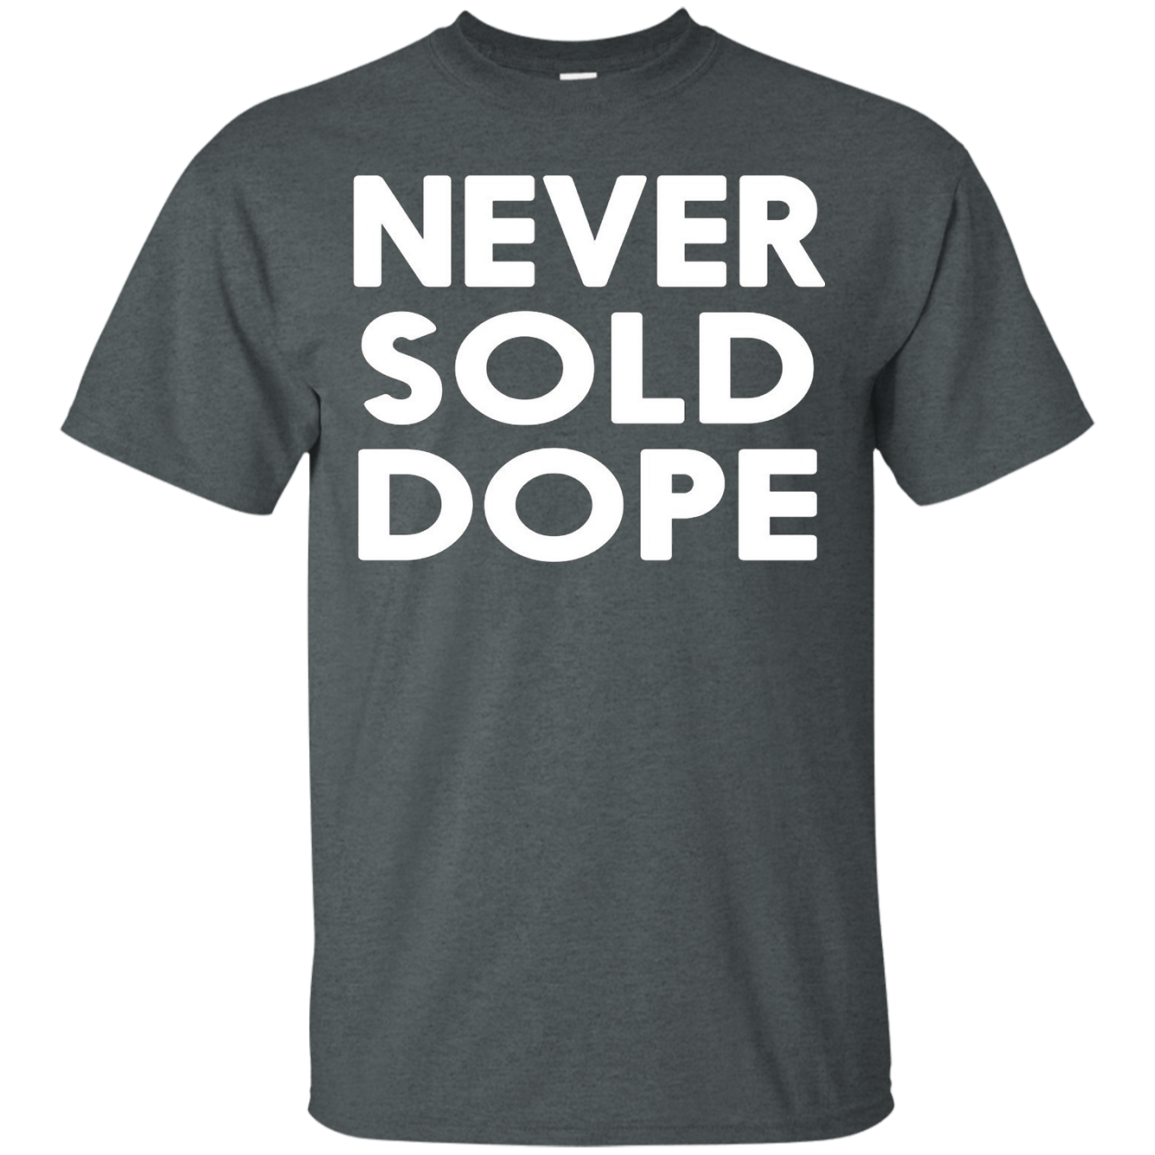 Never Sold Dope Shirt